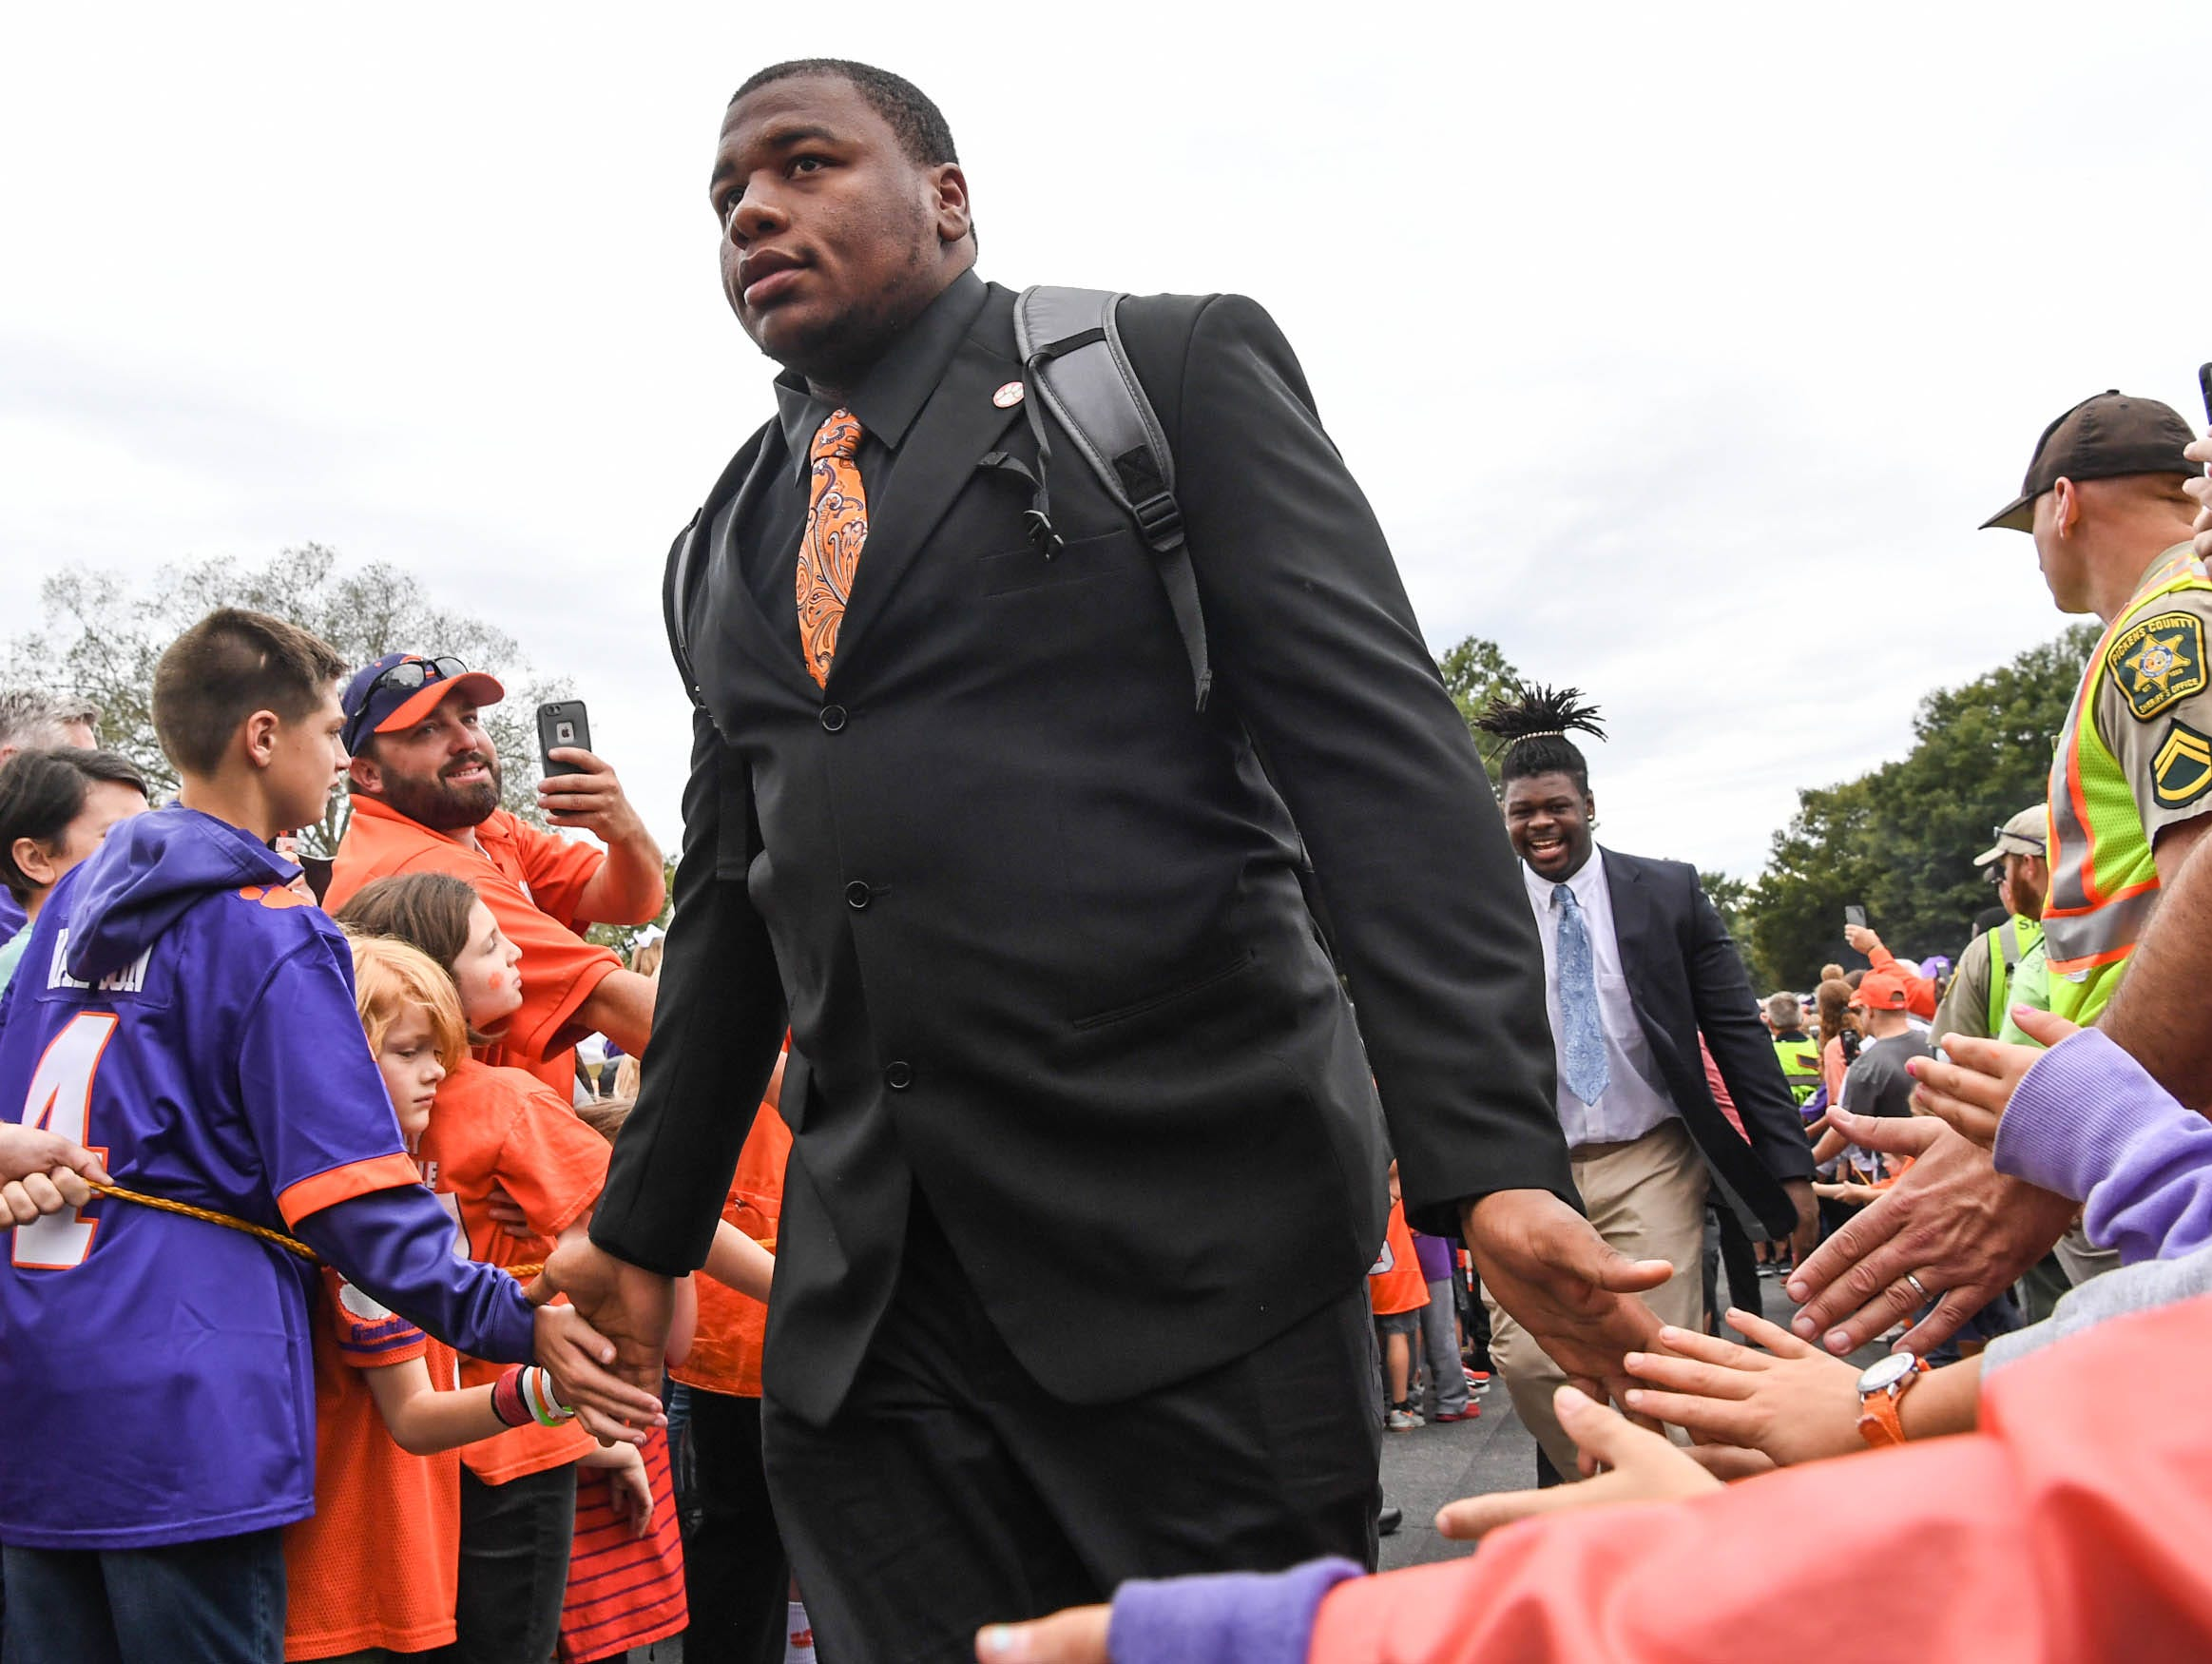 Clemson defensive lineman Dexter Lawrence (90) walks by fans during Tiger Walk before the game in Memorial Stadium on Saturday, October 20, 2018.